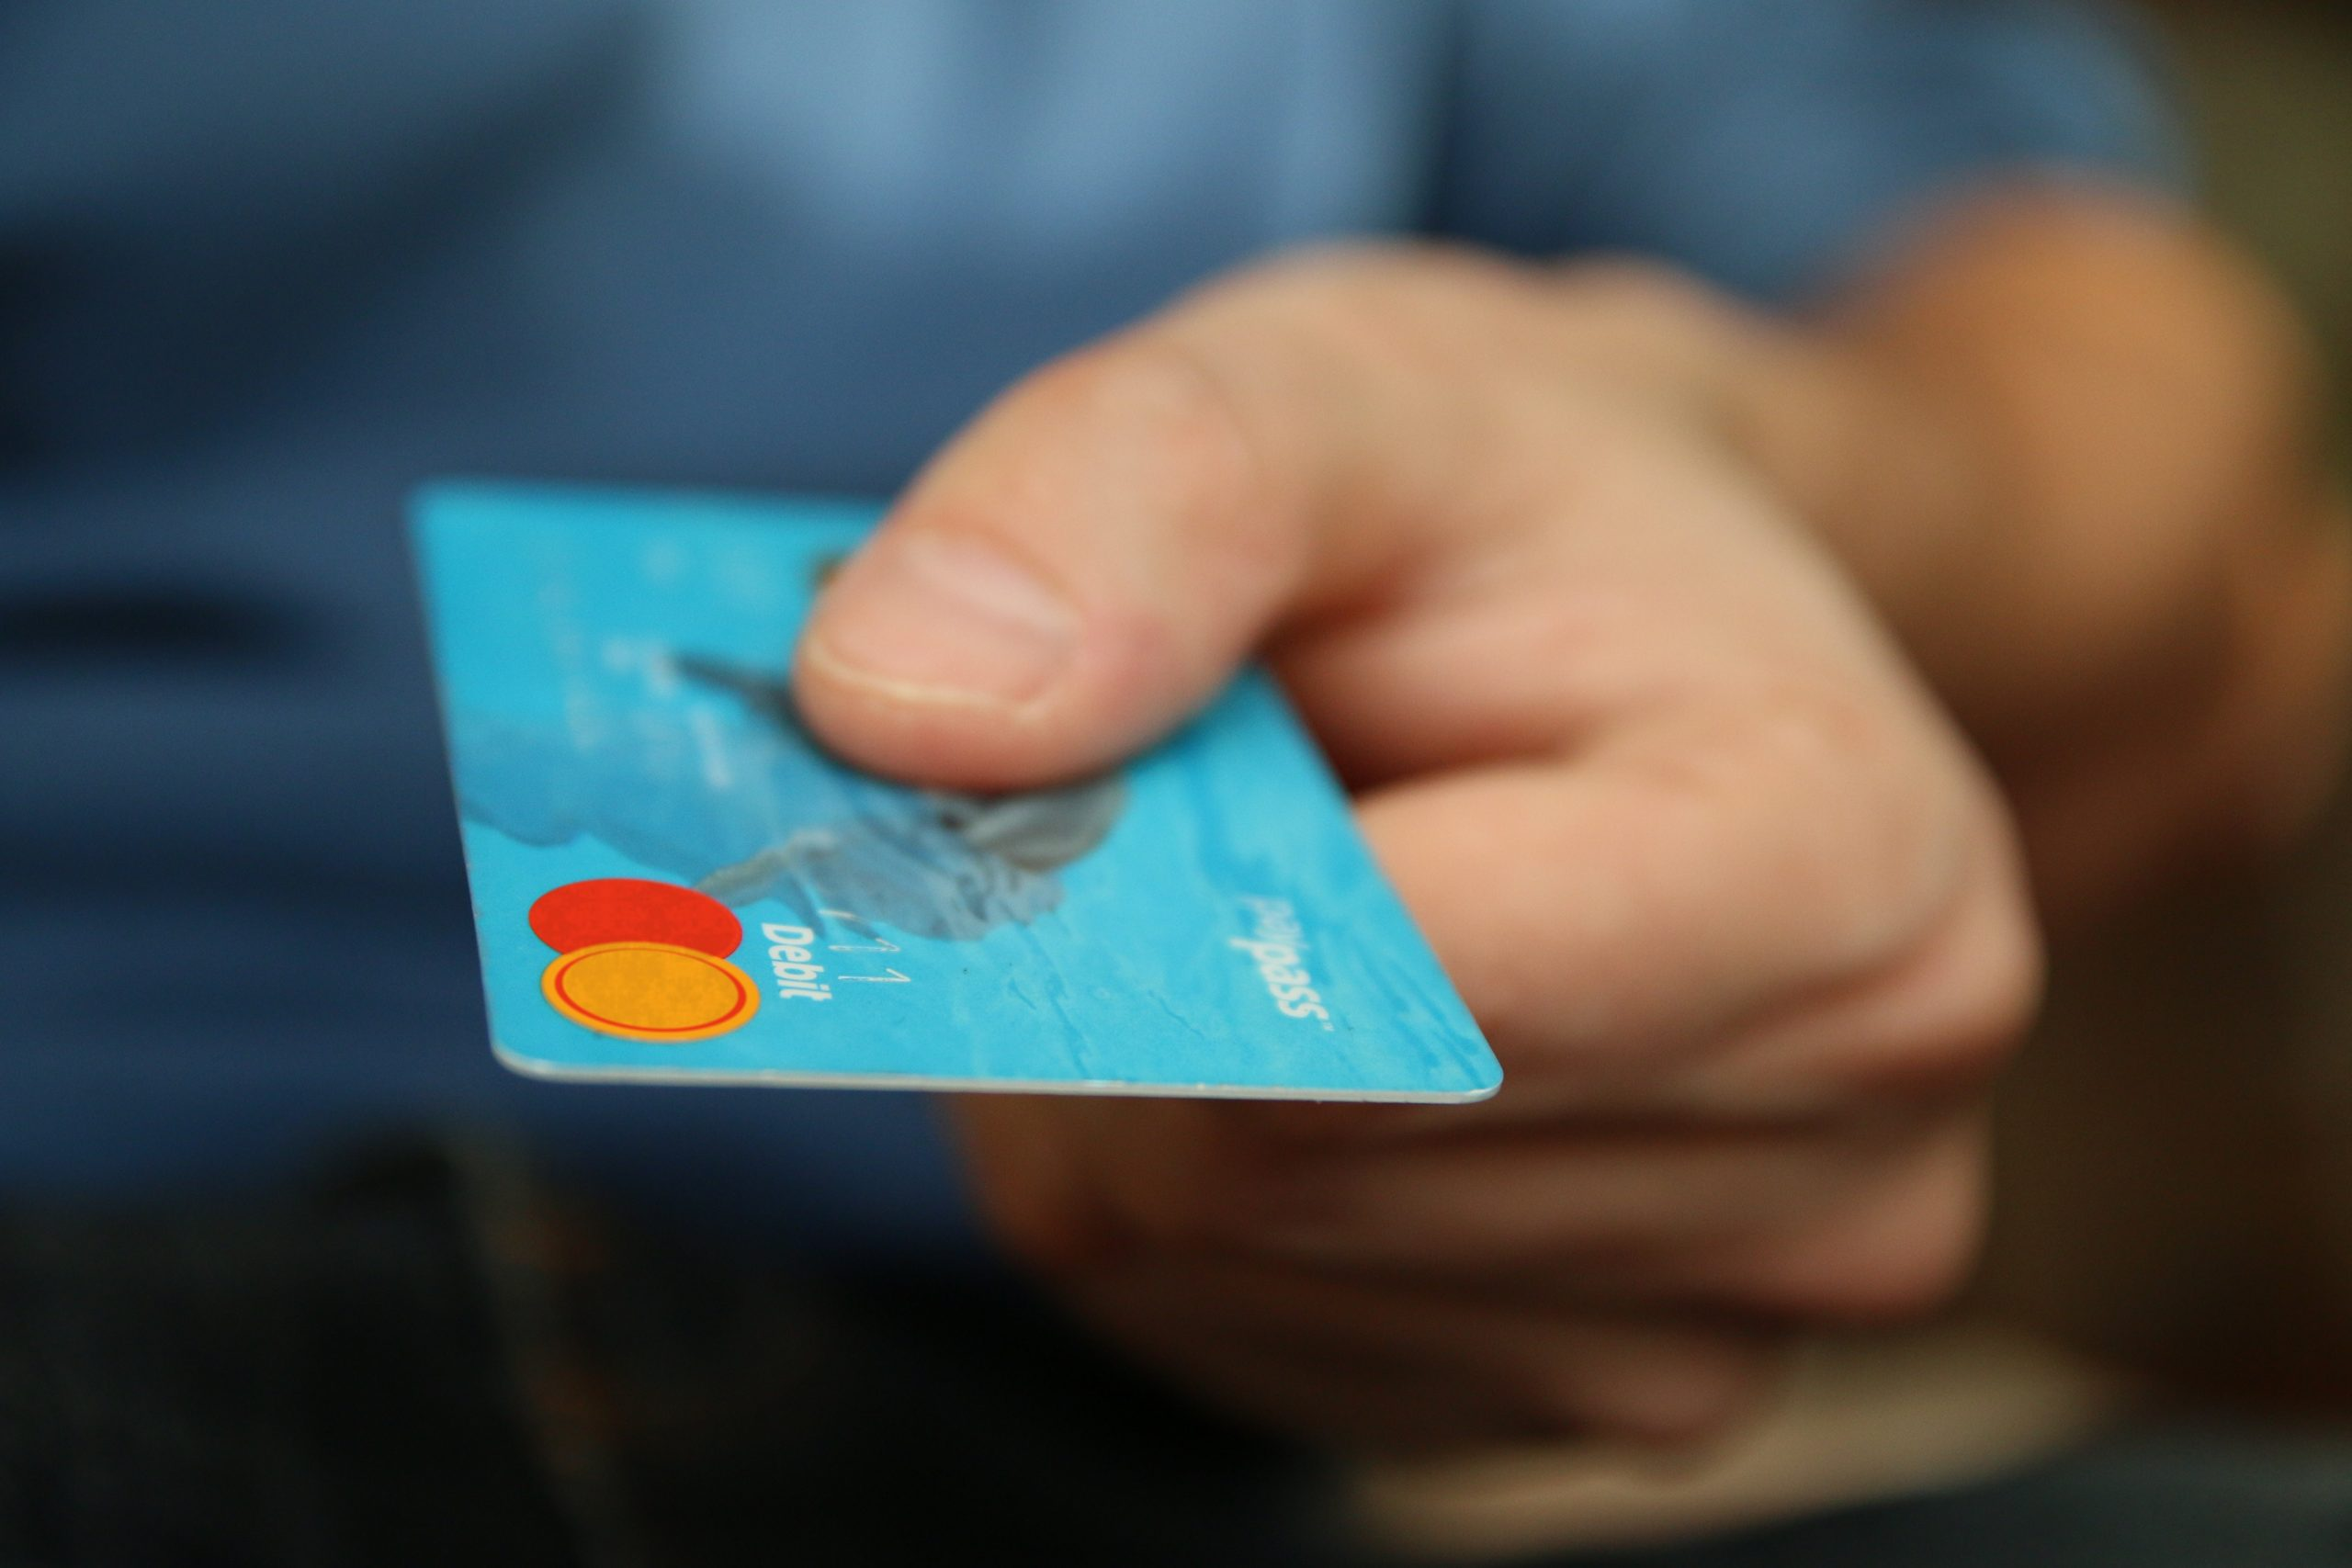 Should I Store My Credit Card Info Online?